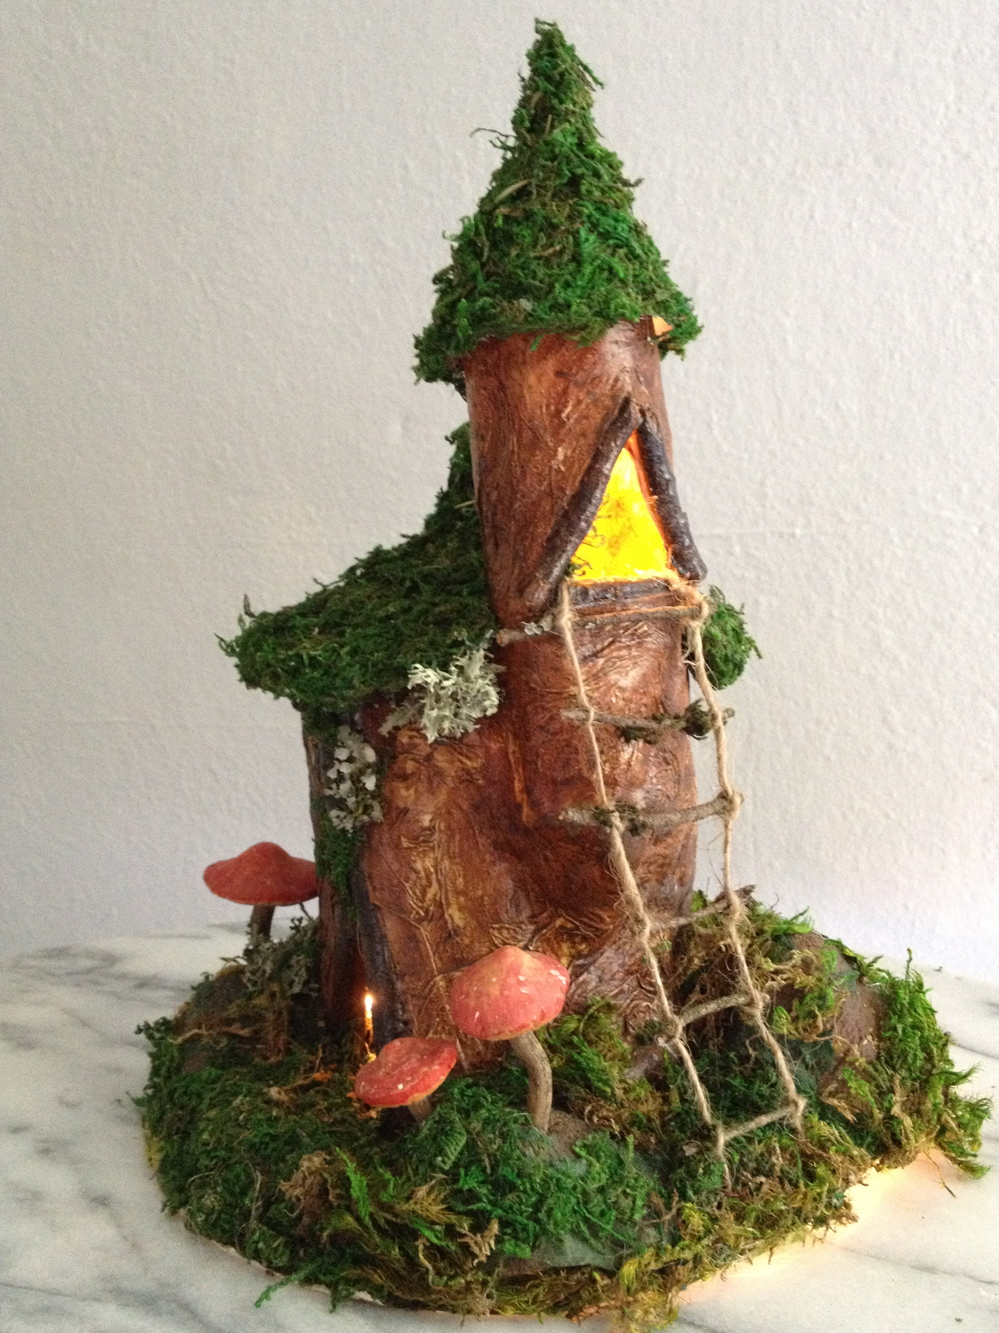 Dumbledore's tower fairy gnome house nightlight with mushrooms